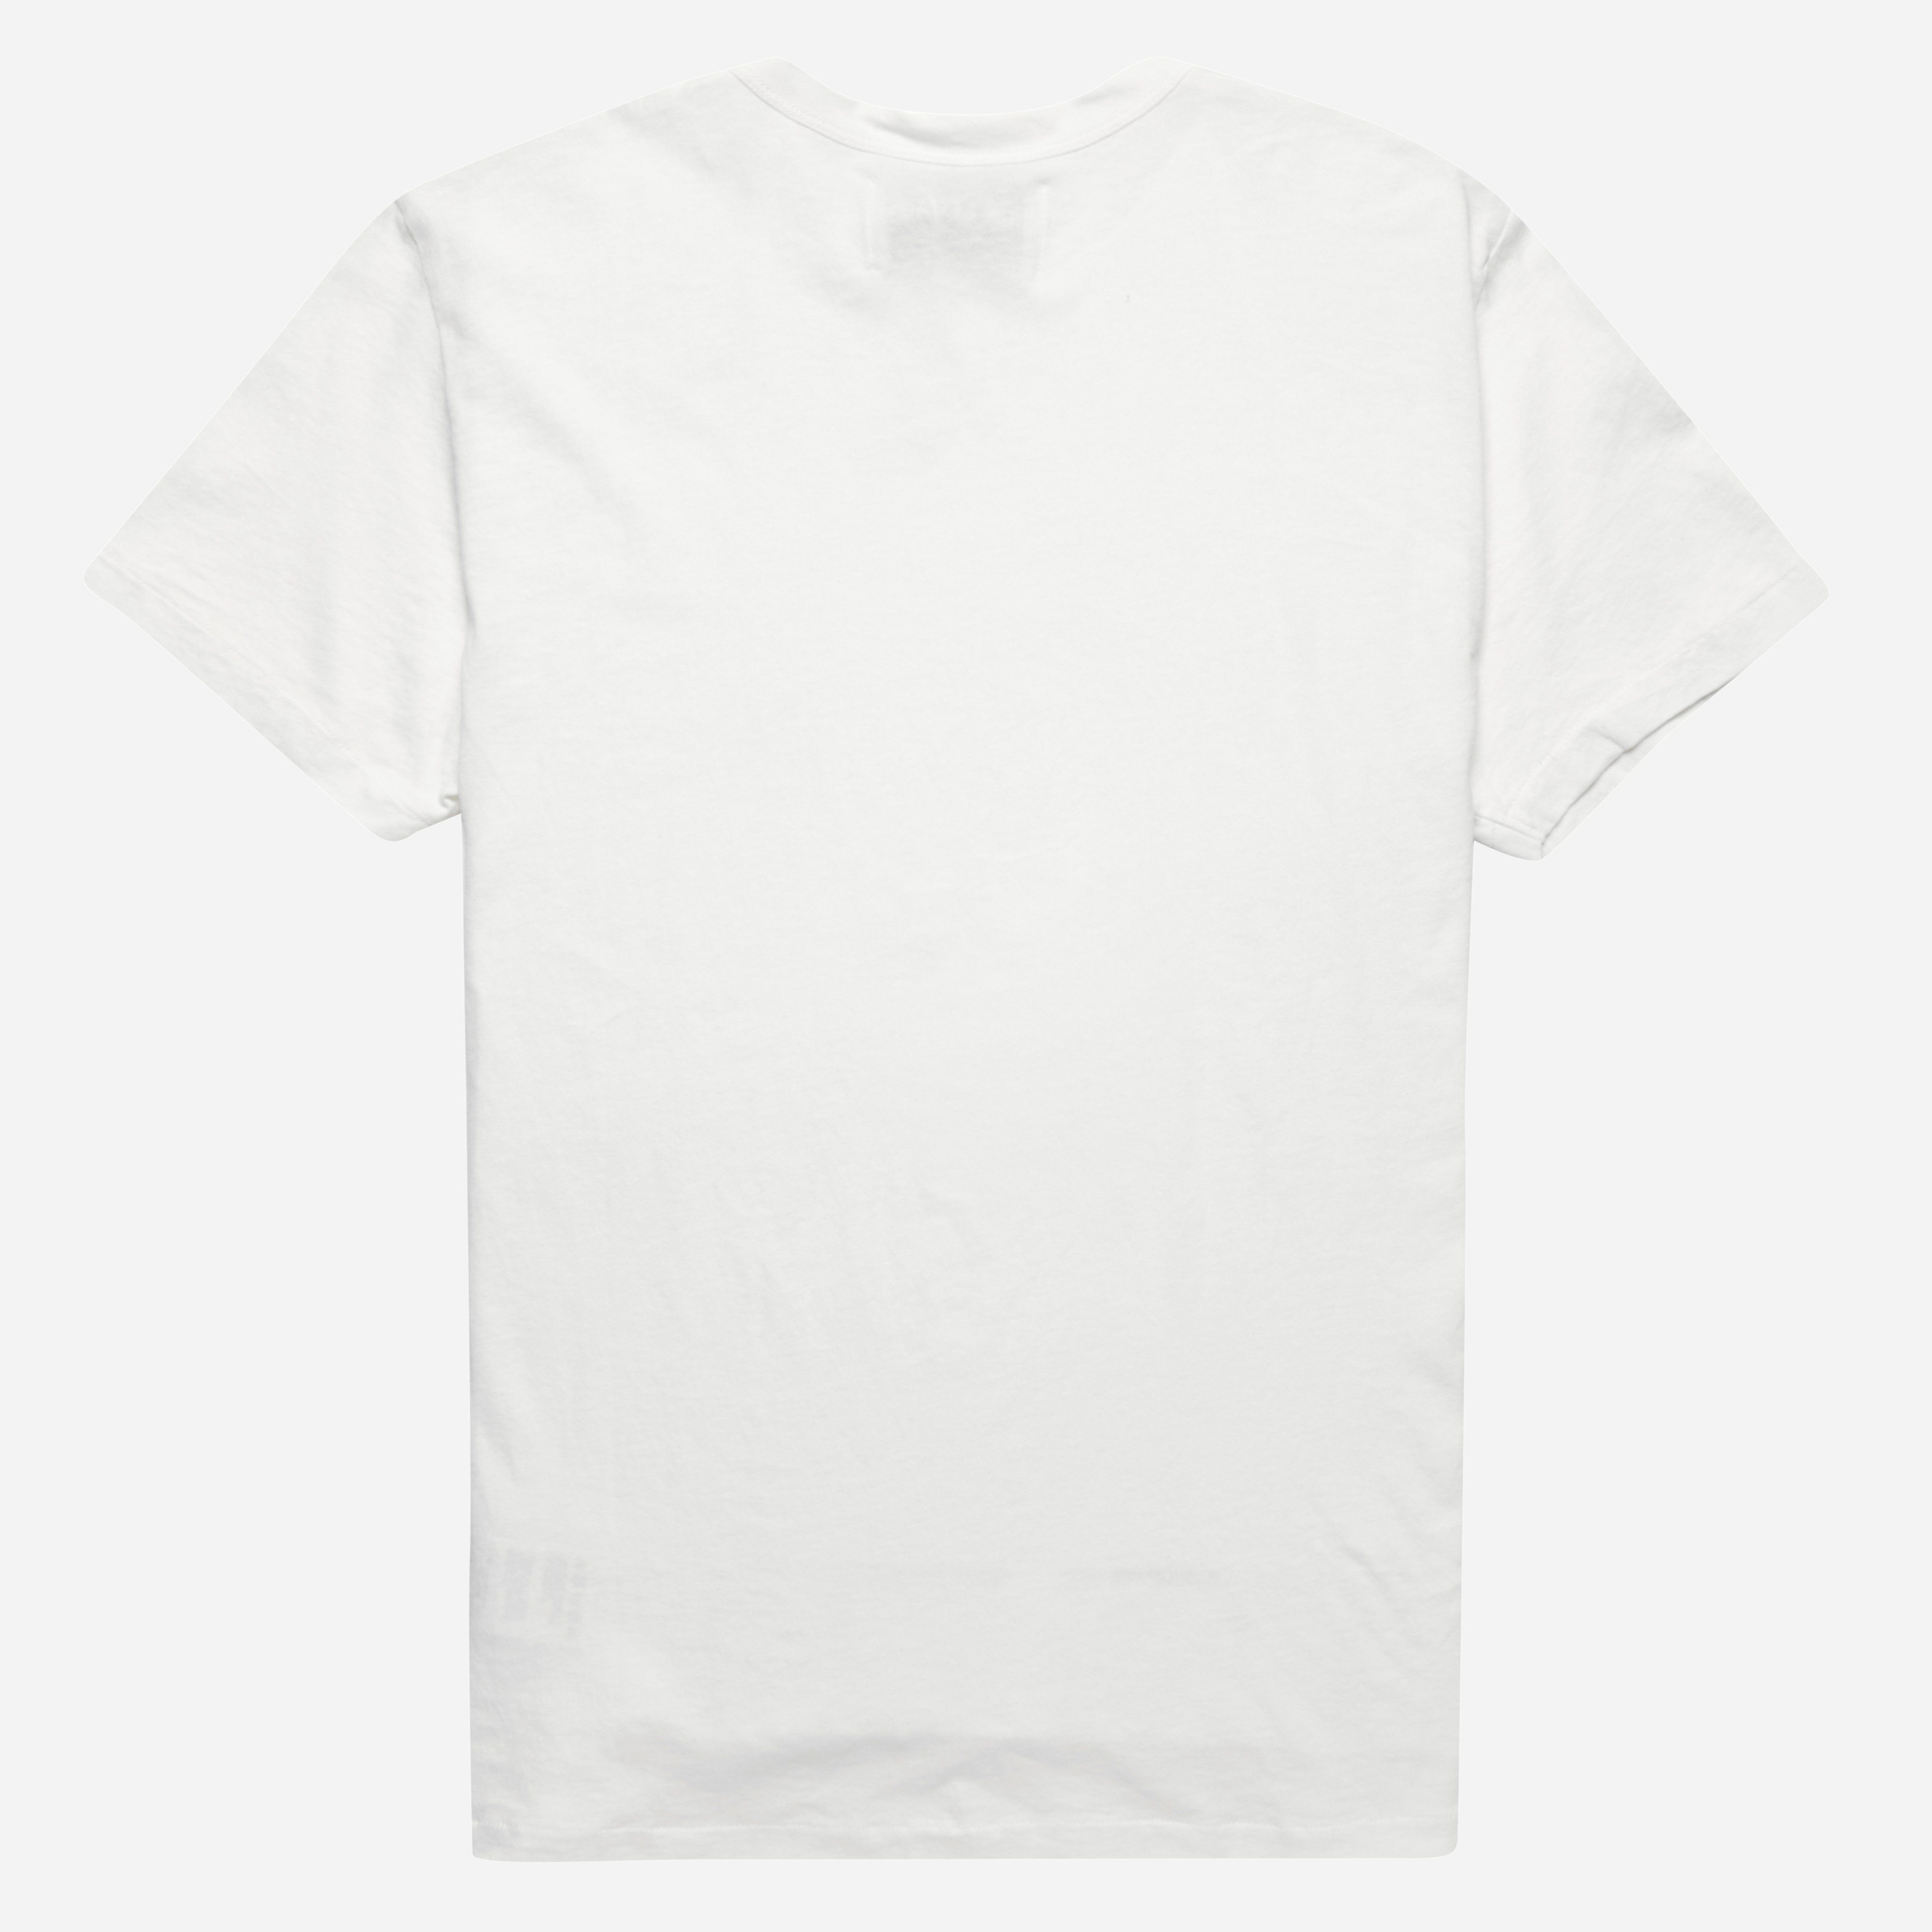 Our Legacy Perfect T-shirt